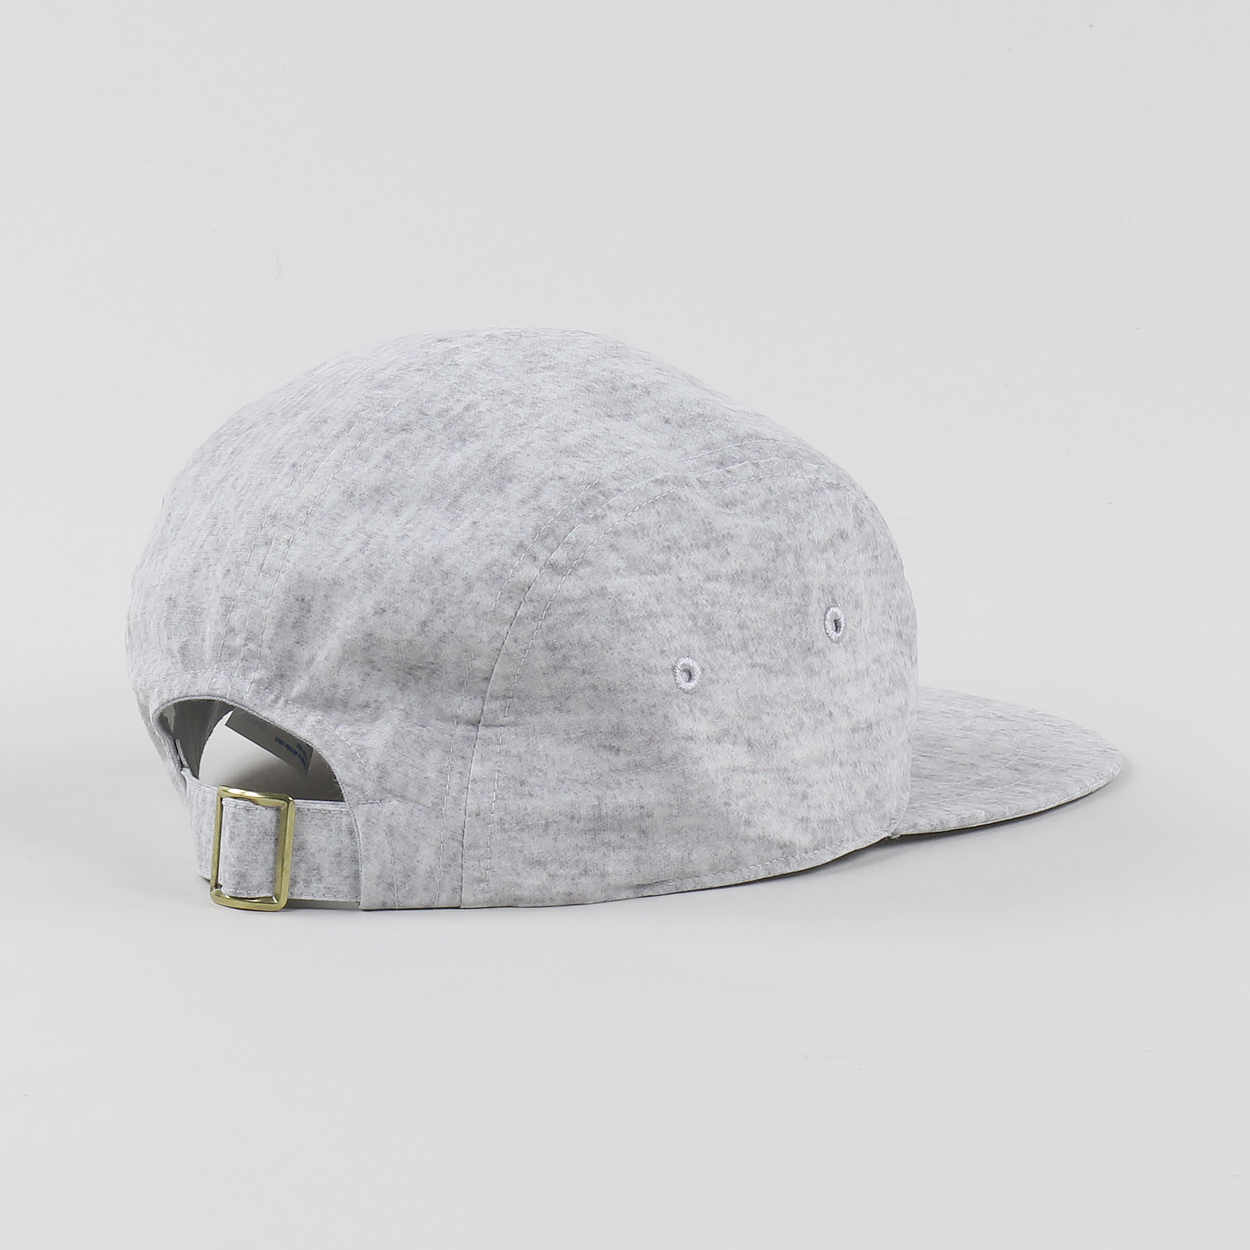 f316f66a79c372 The 5 Panel Cap from Champion Reverse Weave is a flat peak design with  adjustable rear strap, which is finished off with logo embroidery to the  front panel.